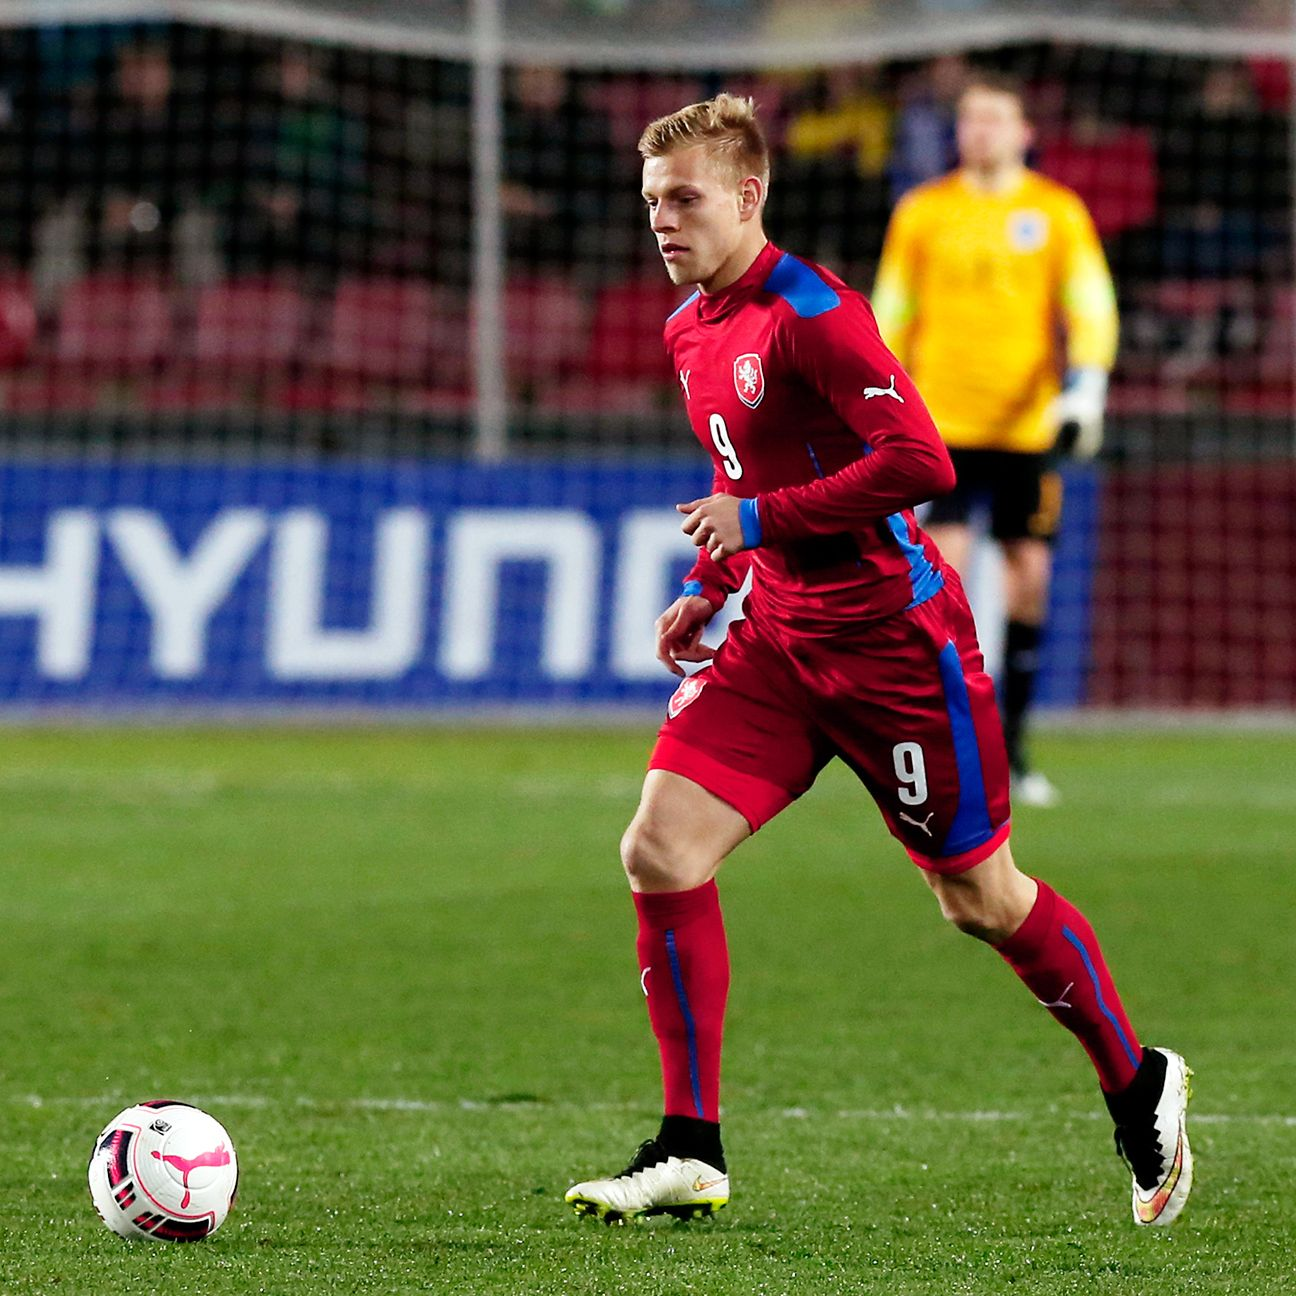 Matej Vydra will shoulder much of the scoring burden for hosts Czech Republic.